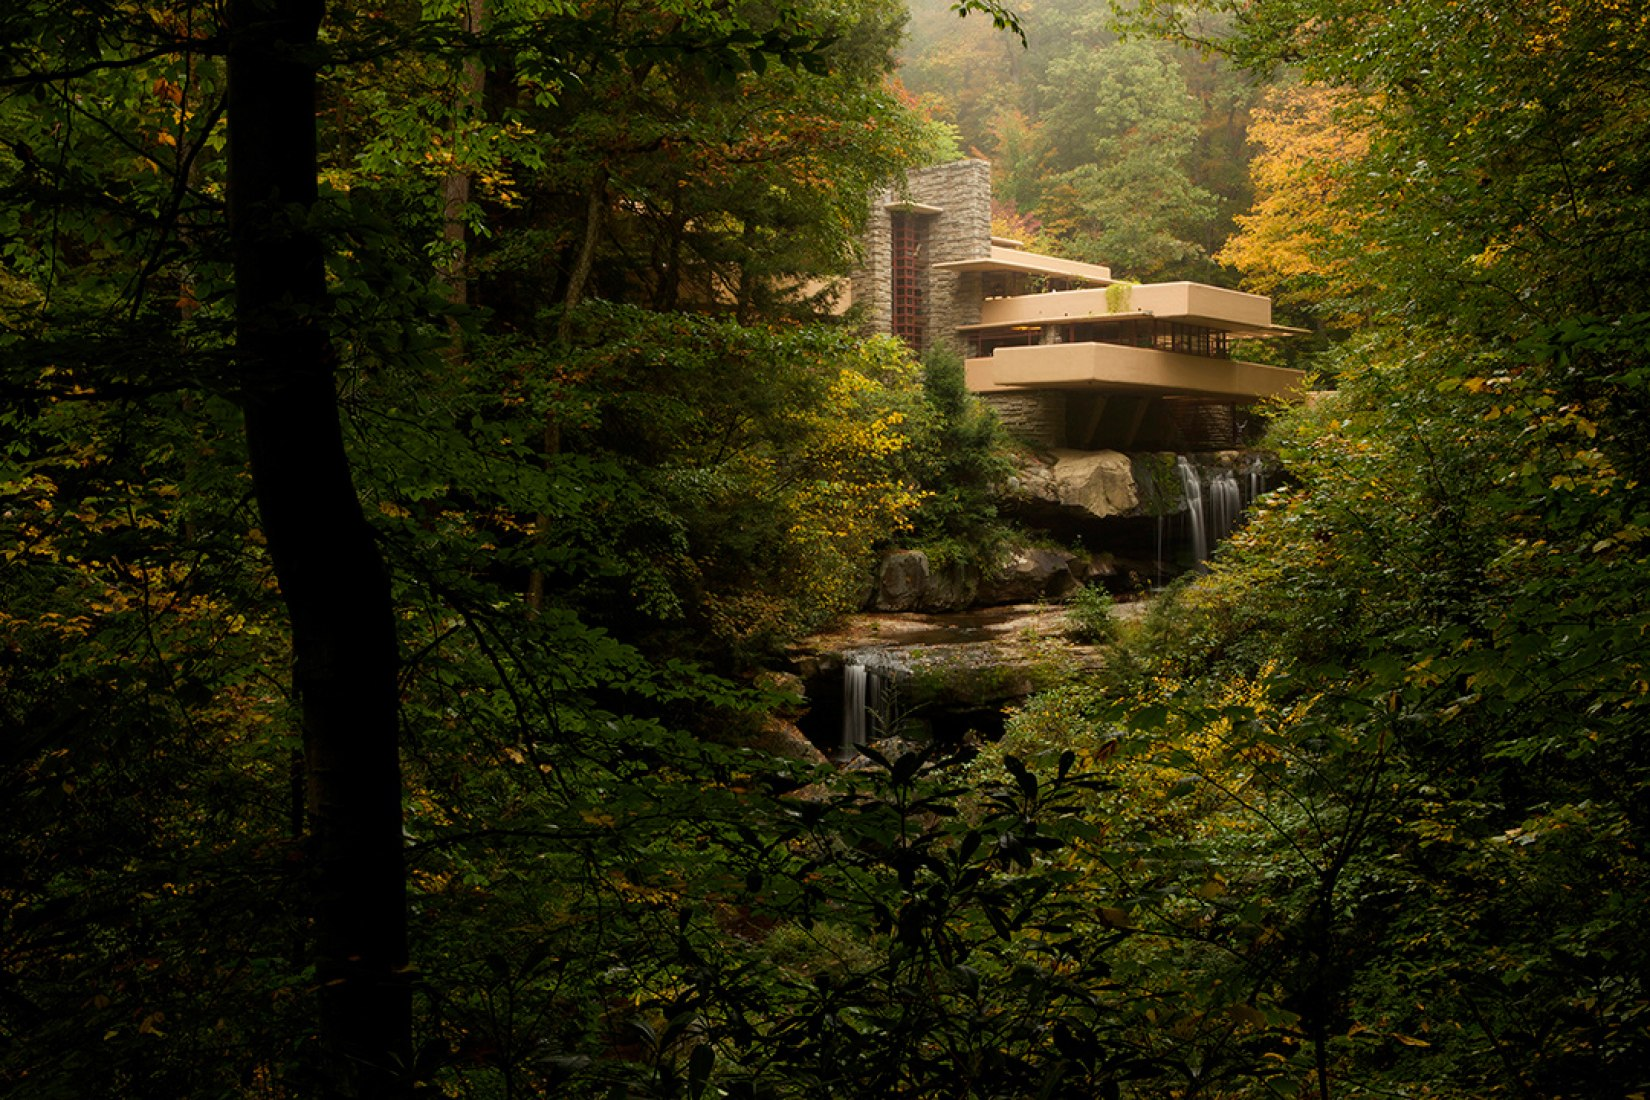 Distant southwestern view. Fallingwater by Frank Lloyd Wright. Photography © Jason Bouwman. Click above to see larger image.